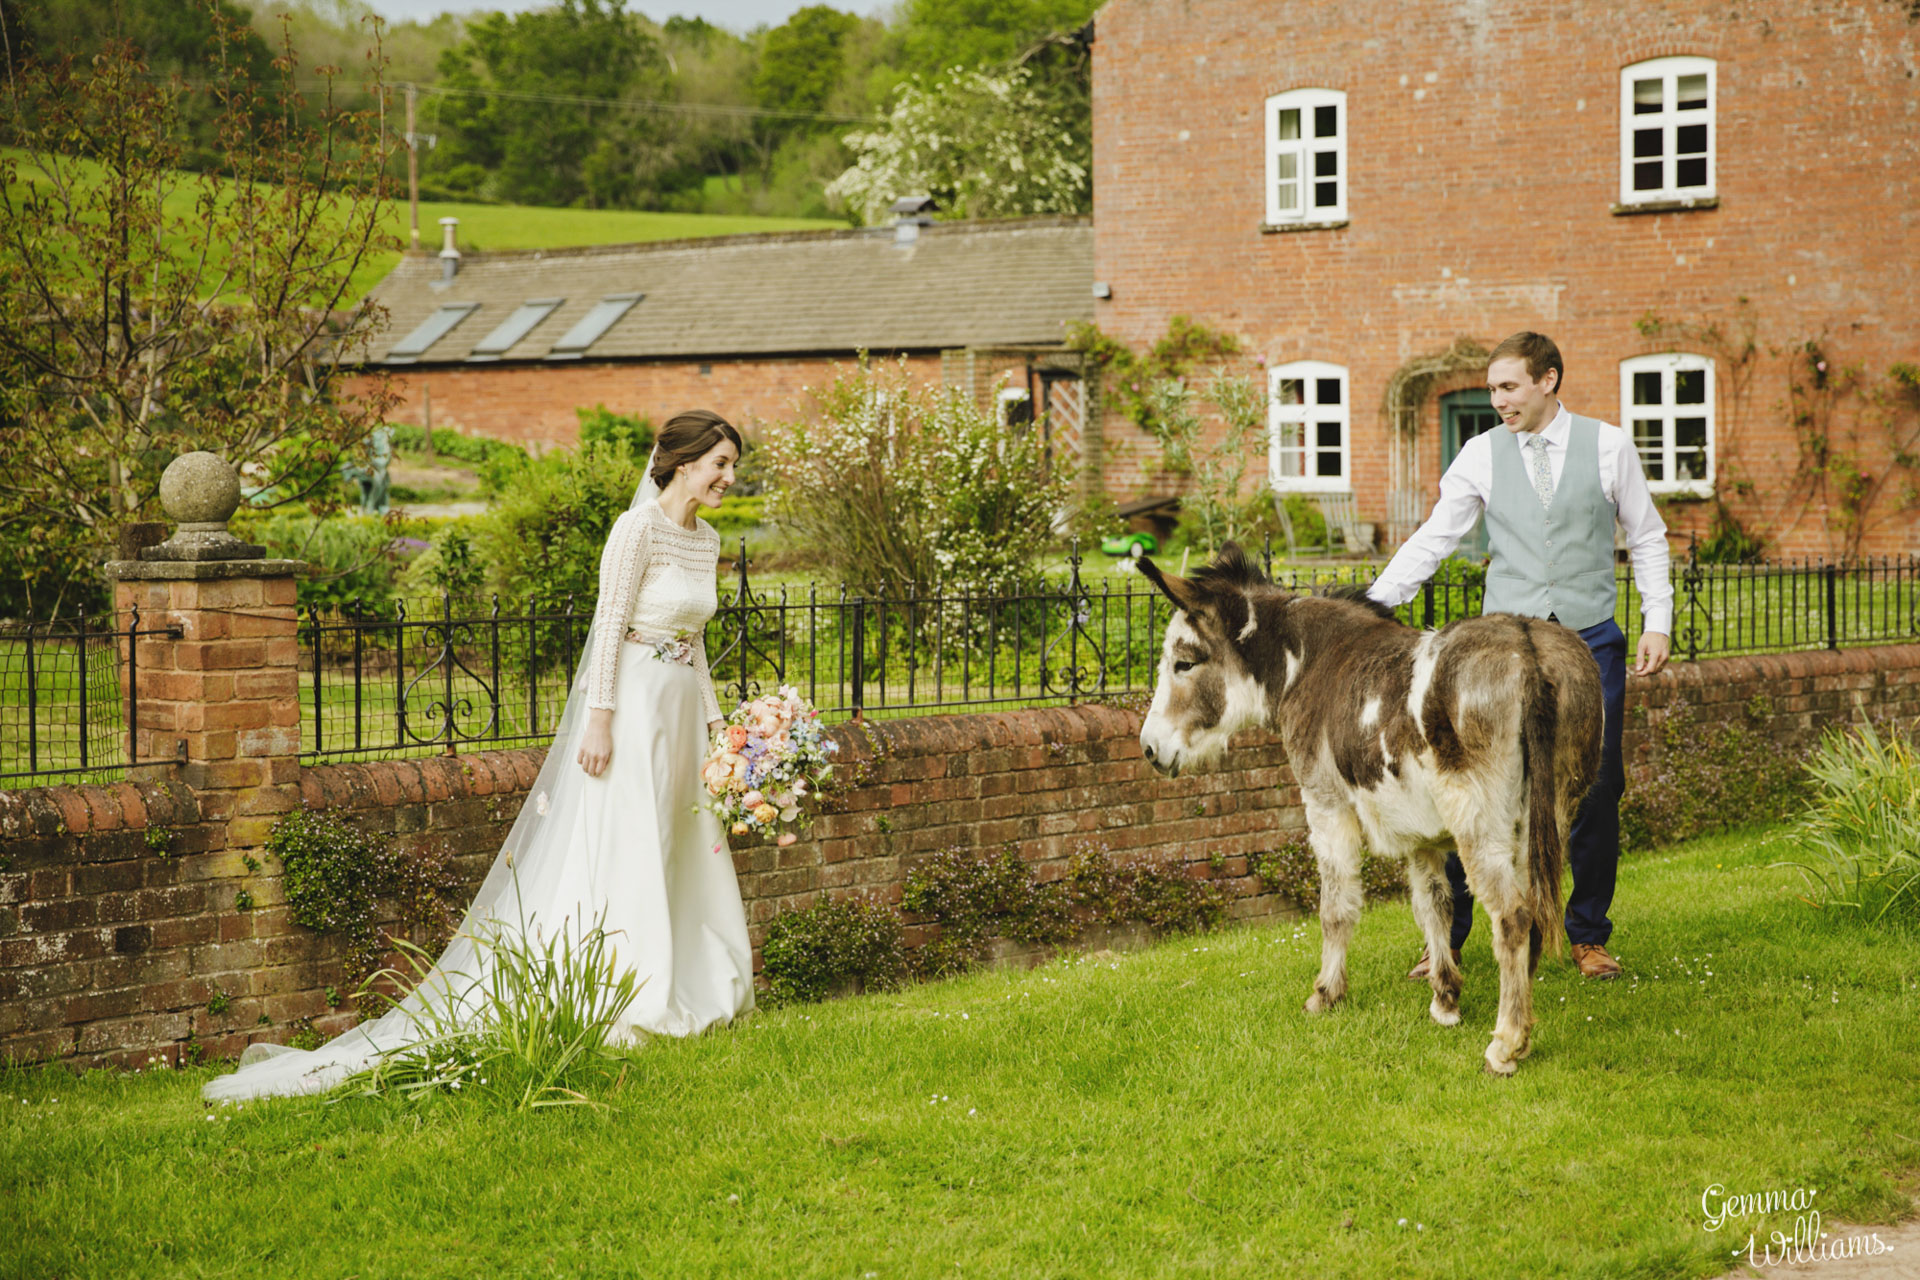 HaybarnWedding_GemmaWilliamsPhoto159.jpg